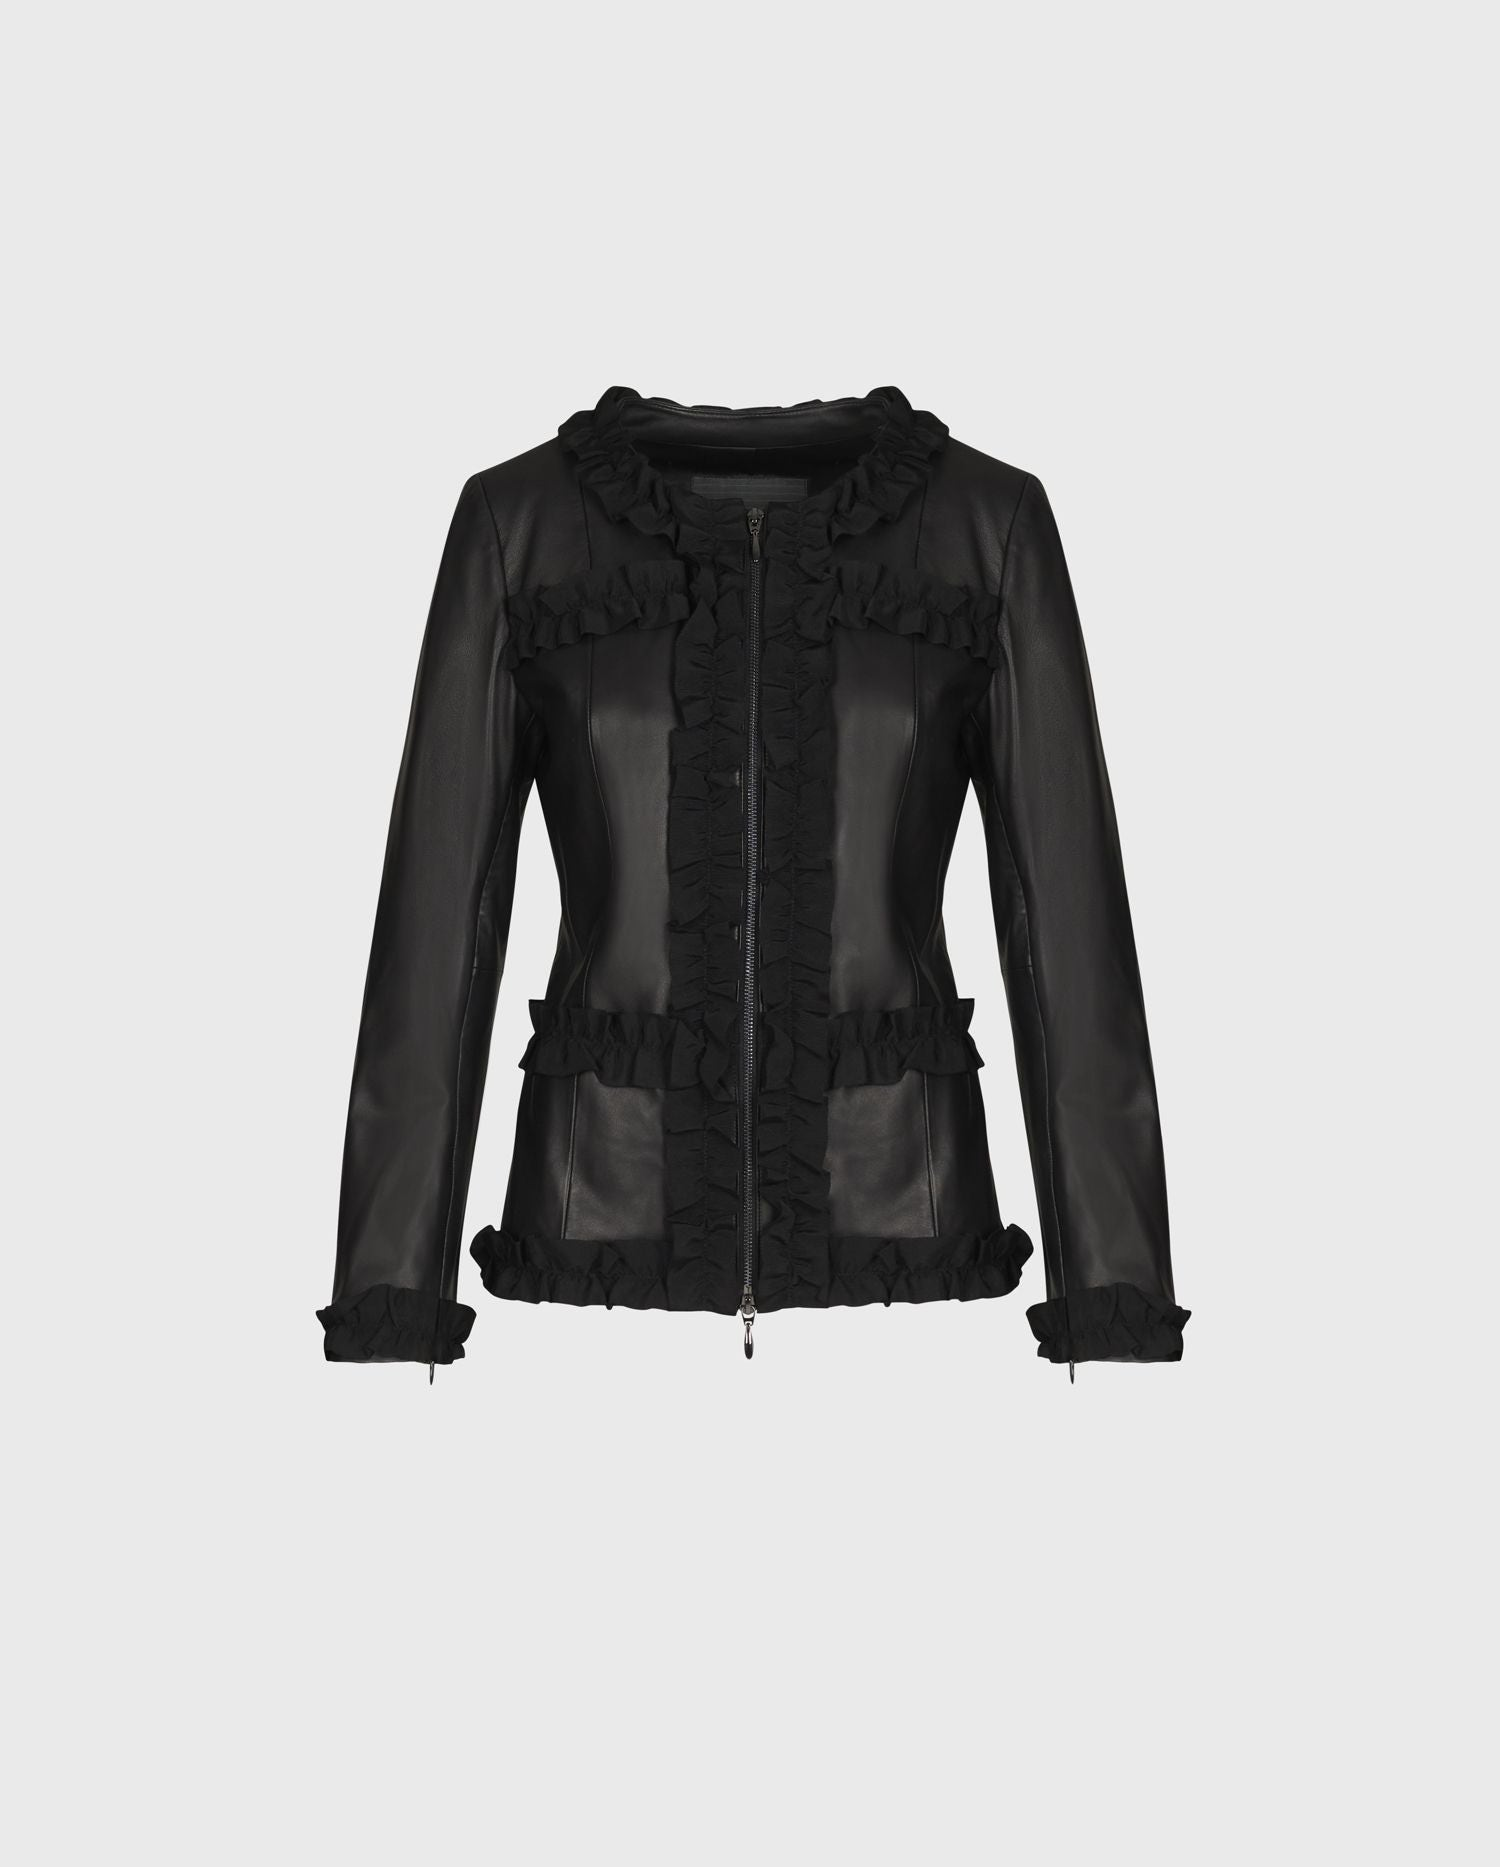 Rocker chic takes center stage this season with CARTER - a leather jacket with a feminine ruffle trim.